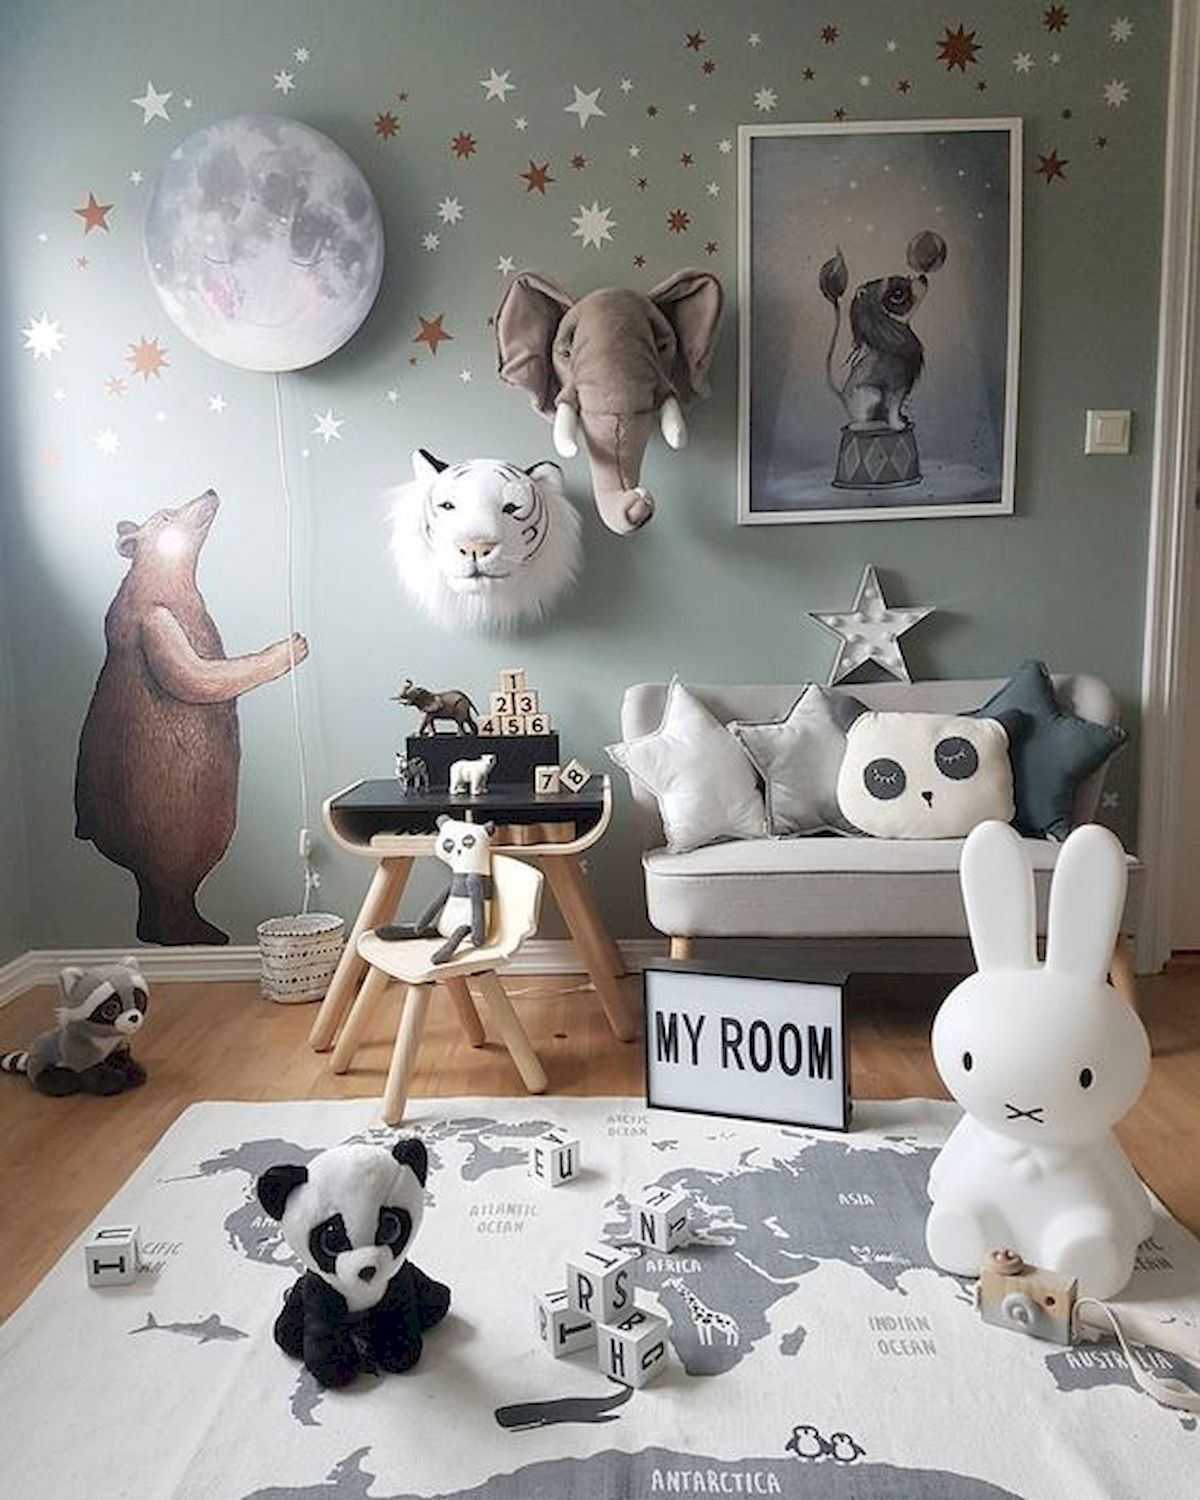 35 Best Baby Room Decor Ideas (22 images